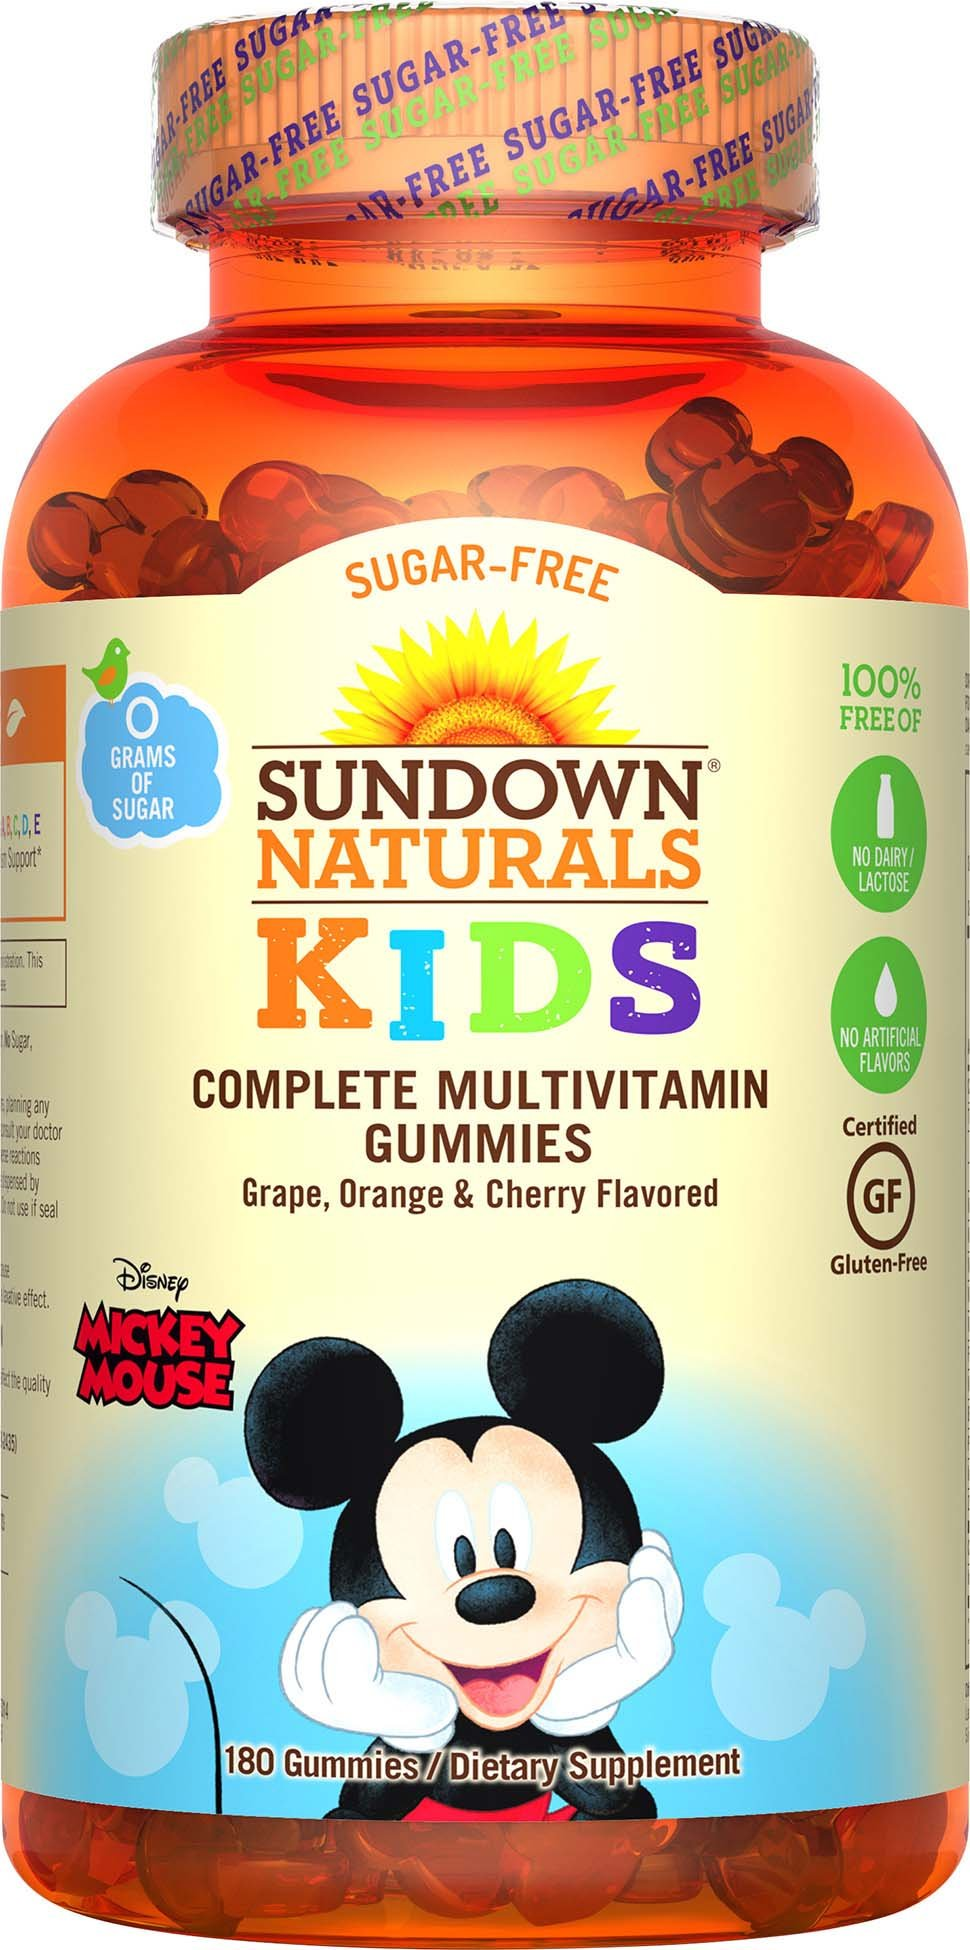 Sundown Naturals Kids Disney Mickey Mouse Sugar Free Complete Multivitamin